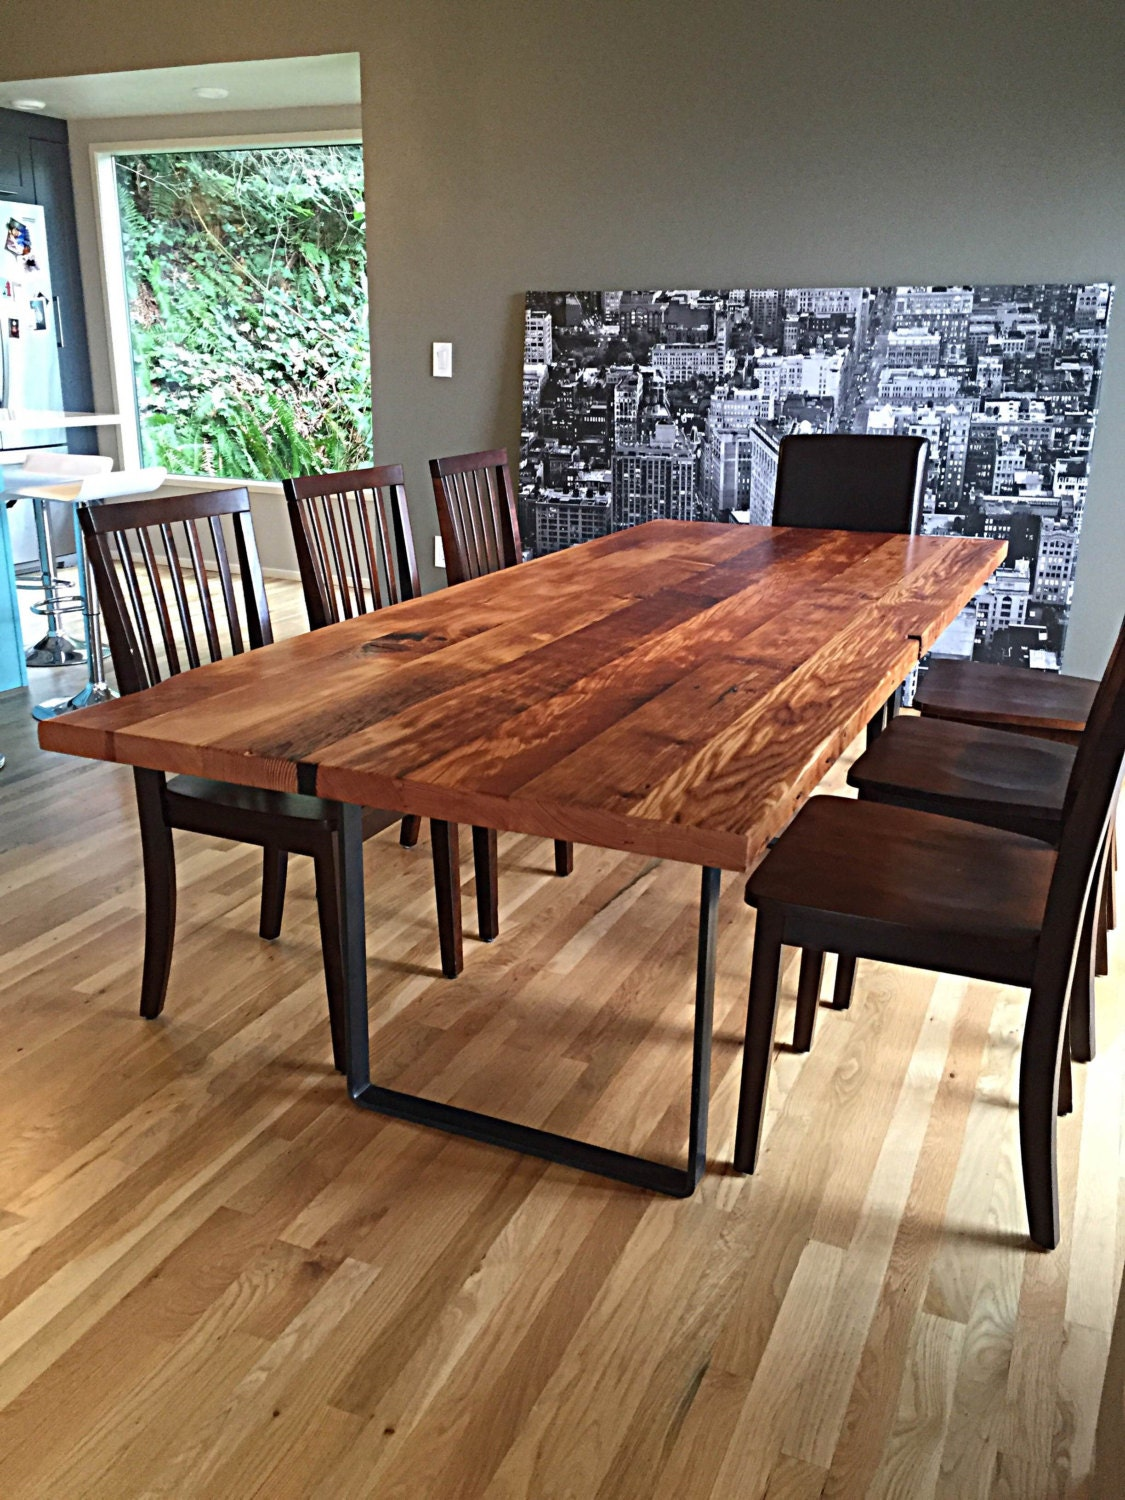 Reclaimed Wood Table ~ Reclaimed wood table